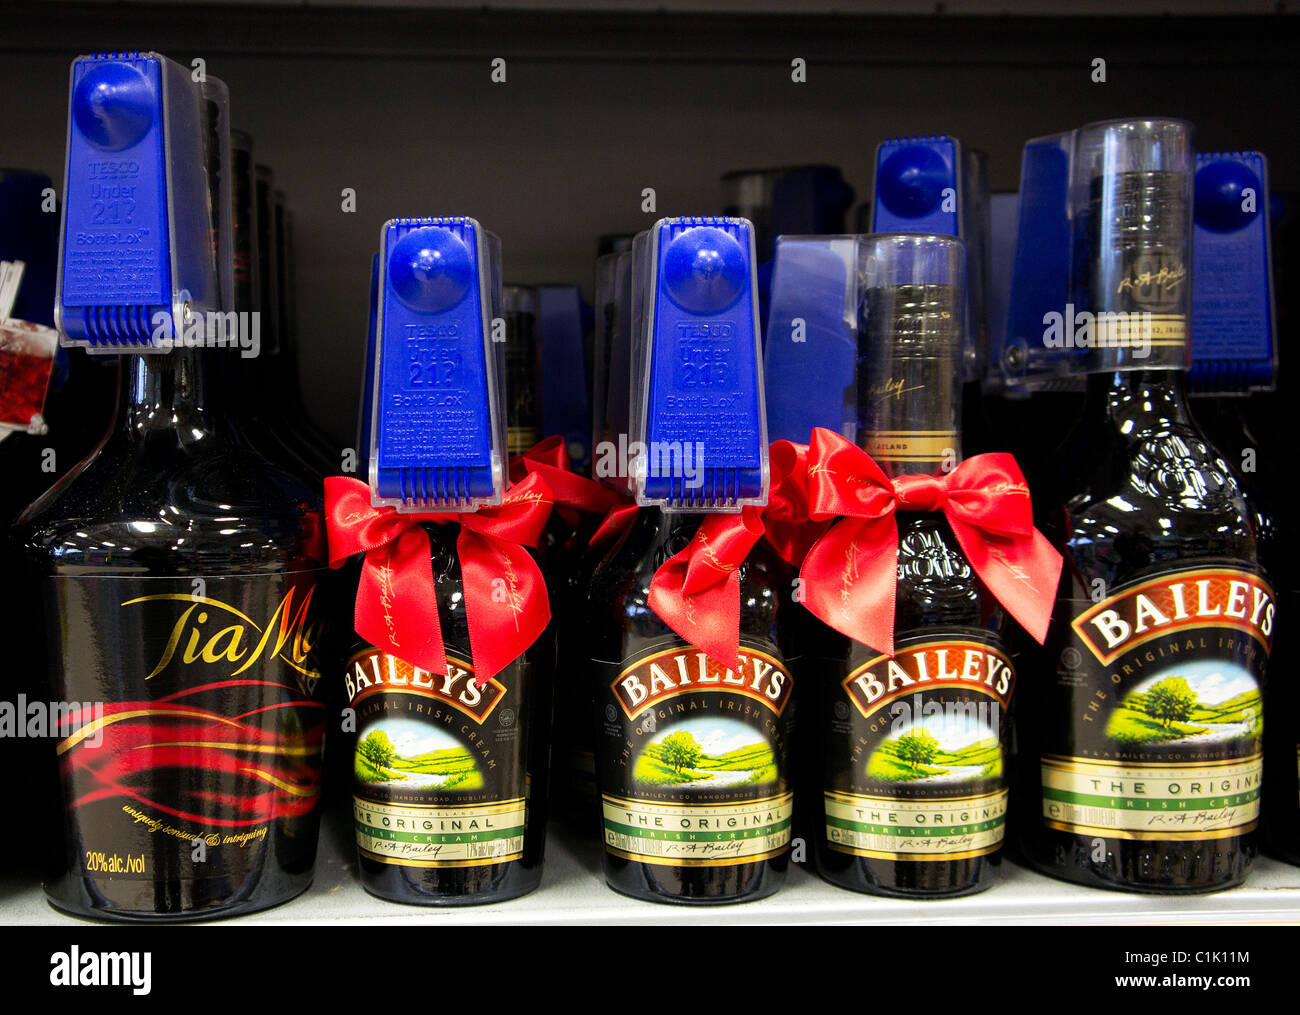 Bottles of Baileys liqueur security tagged in a UK supermarket Stock Photo